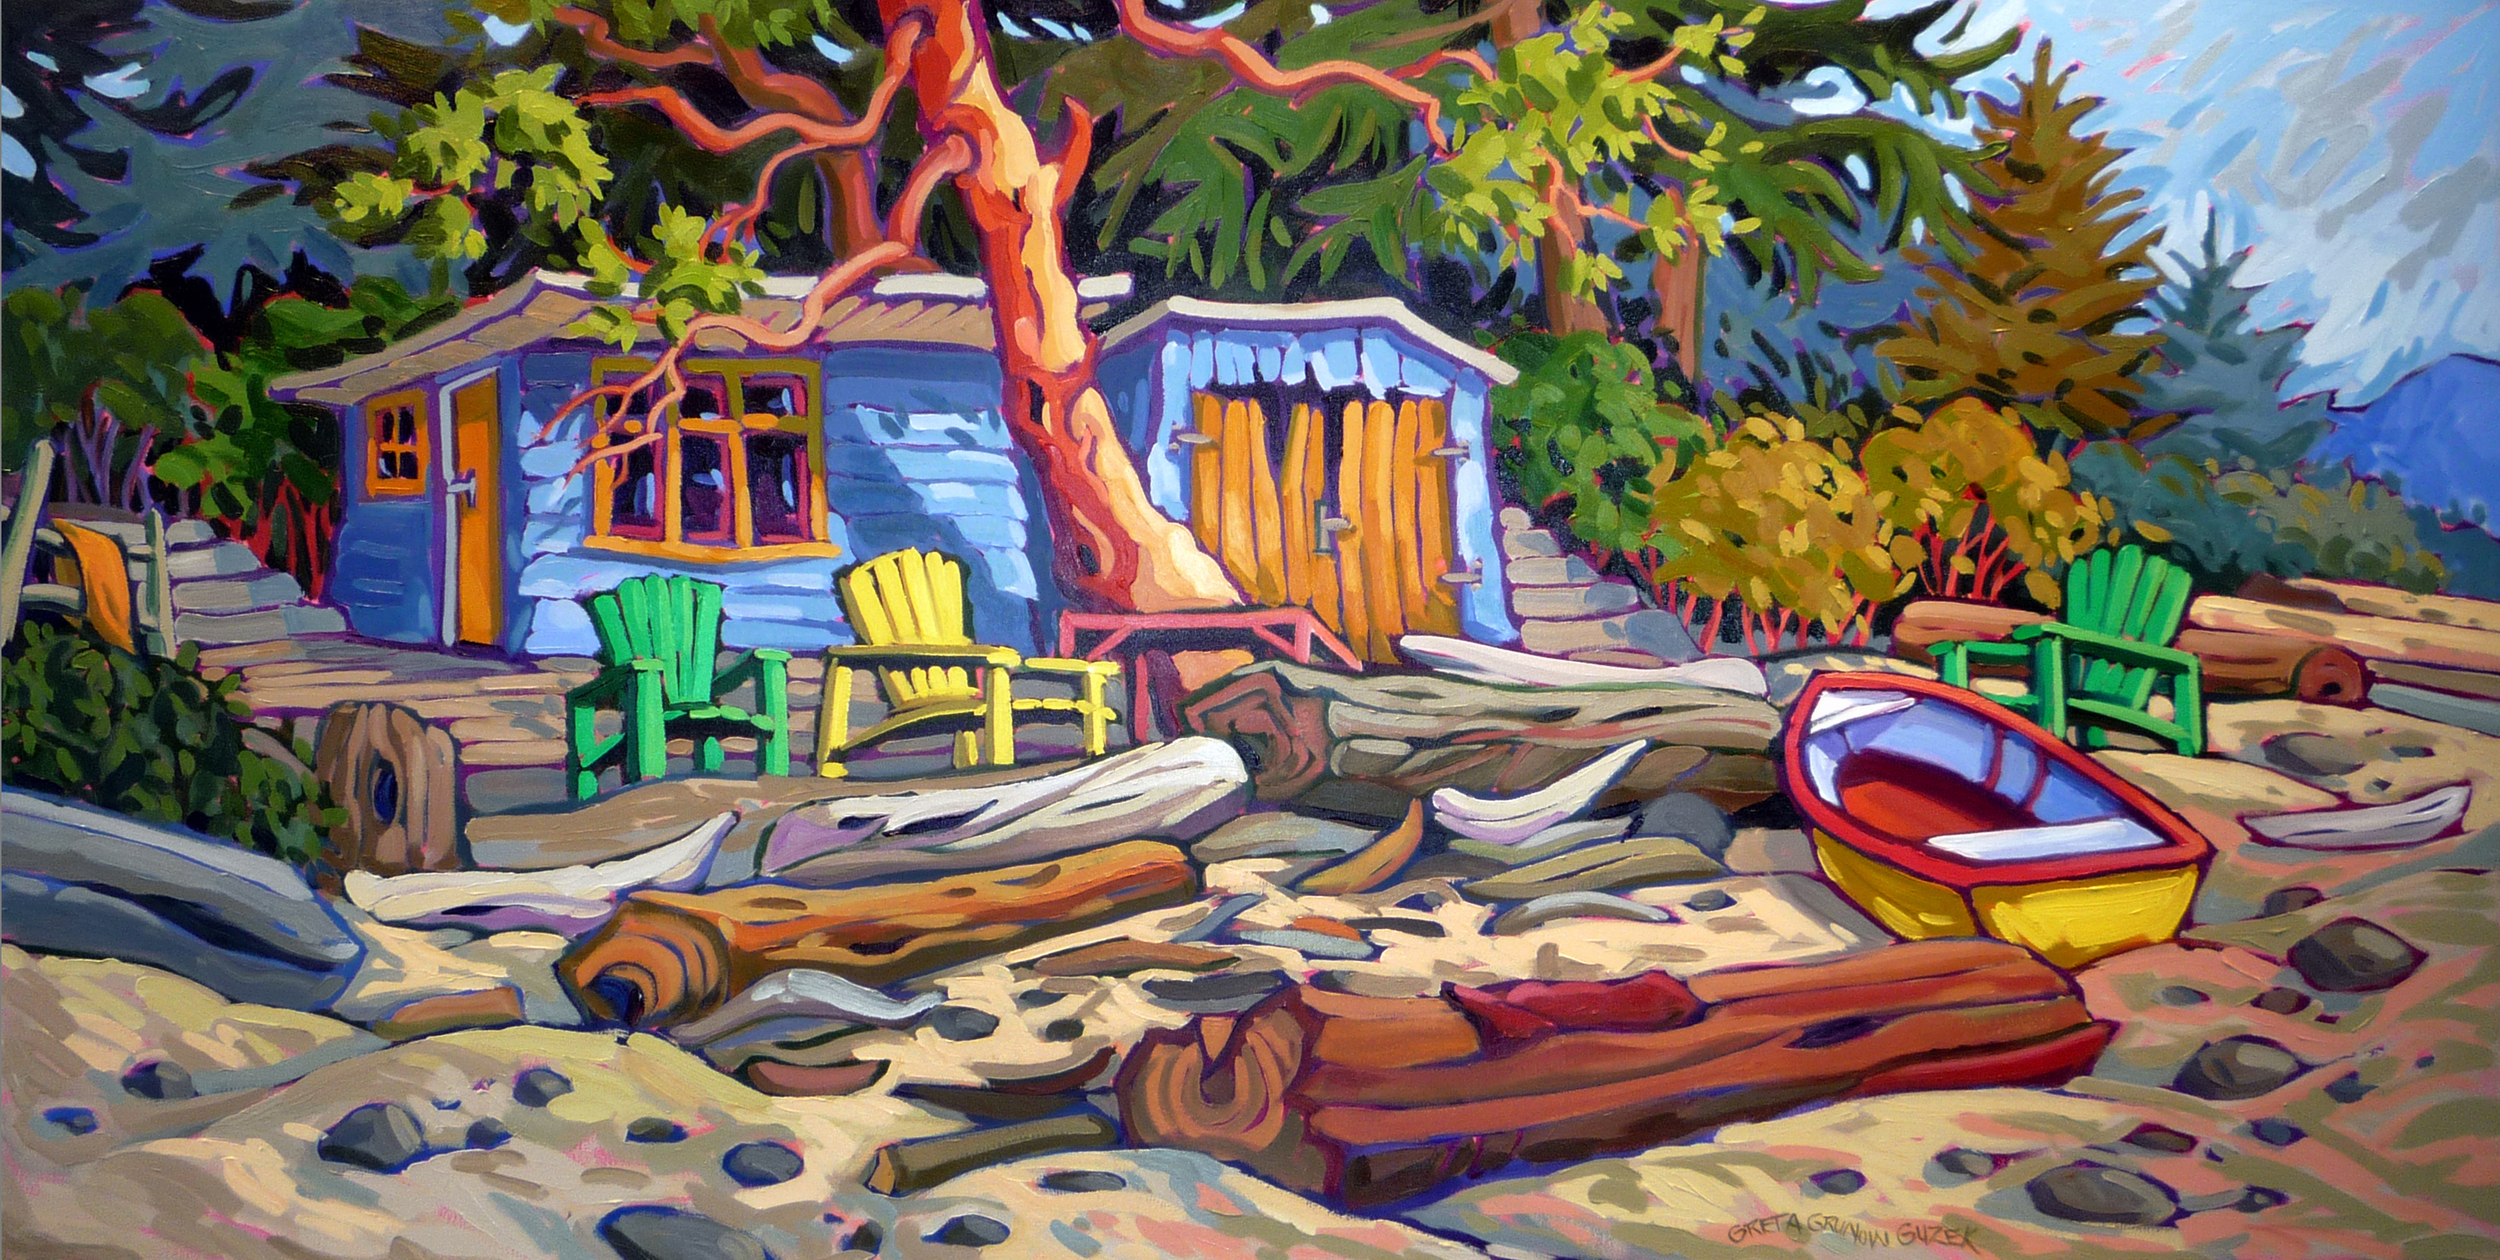 OFF THE GRID 2 (30x60)